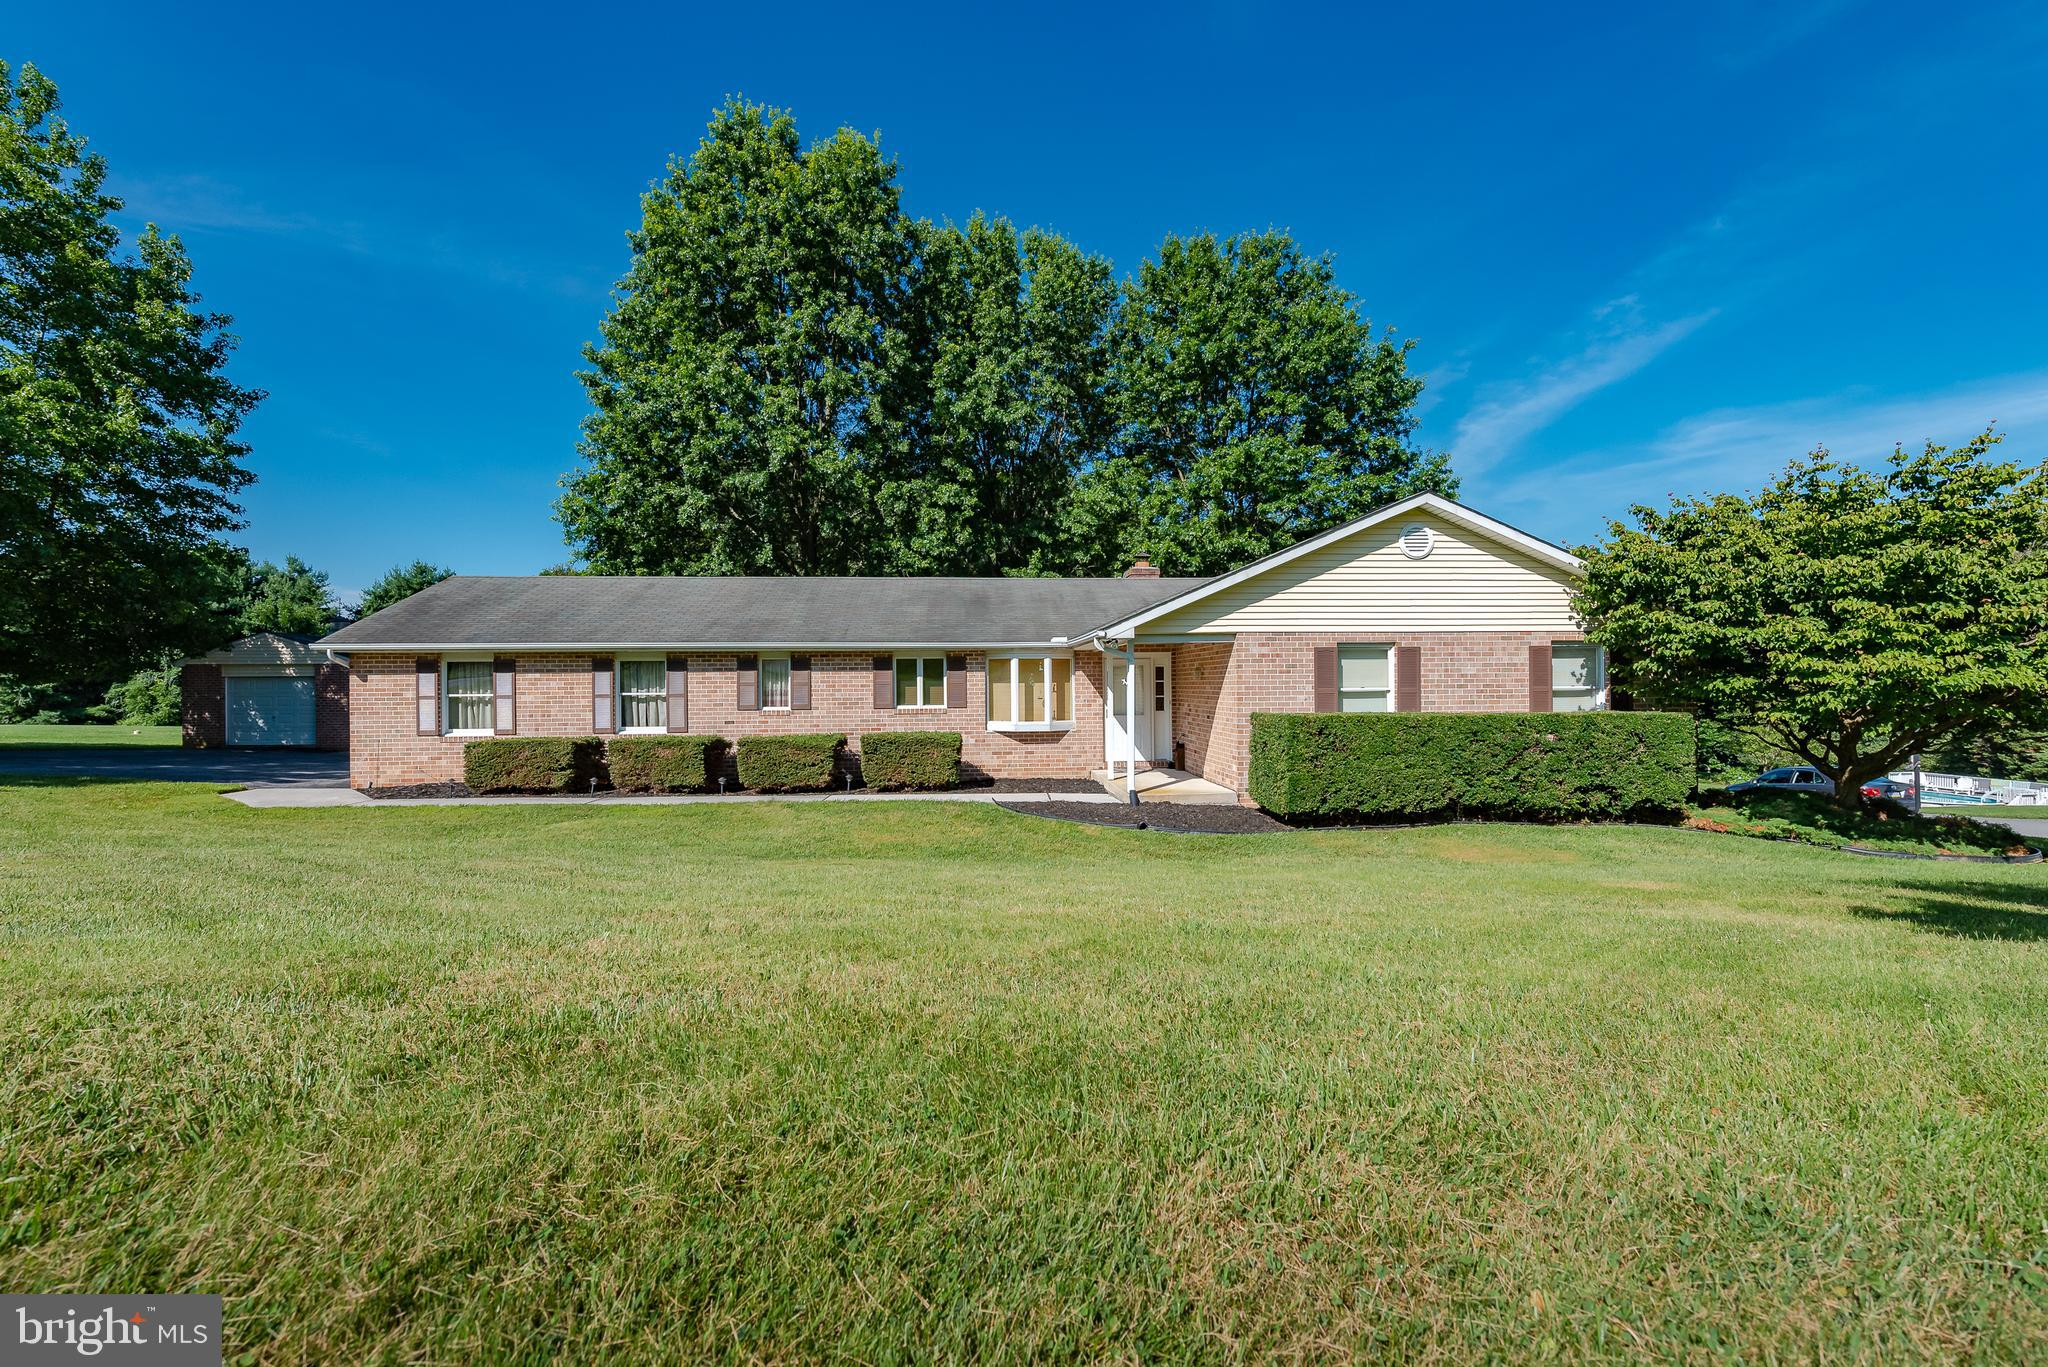 1237 ALLVIEW DRIVE, HAMPSTEAD, MD 21074